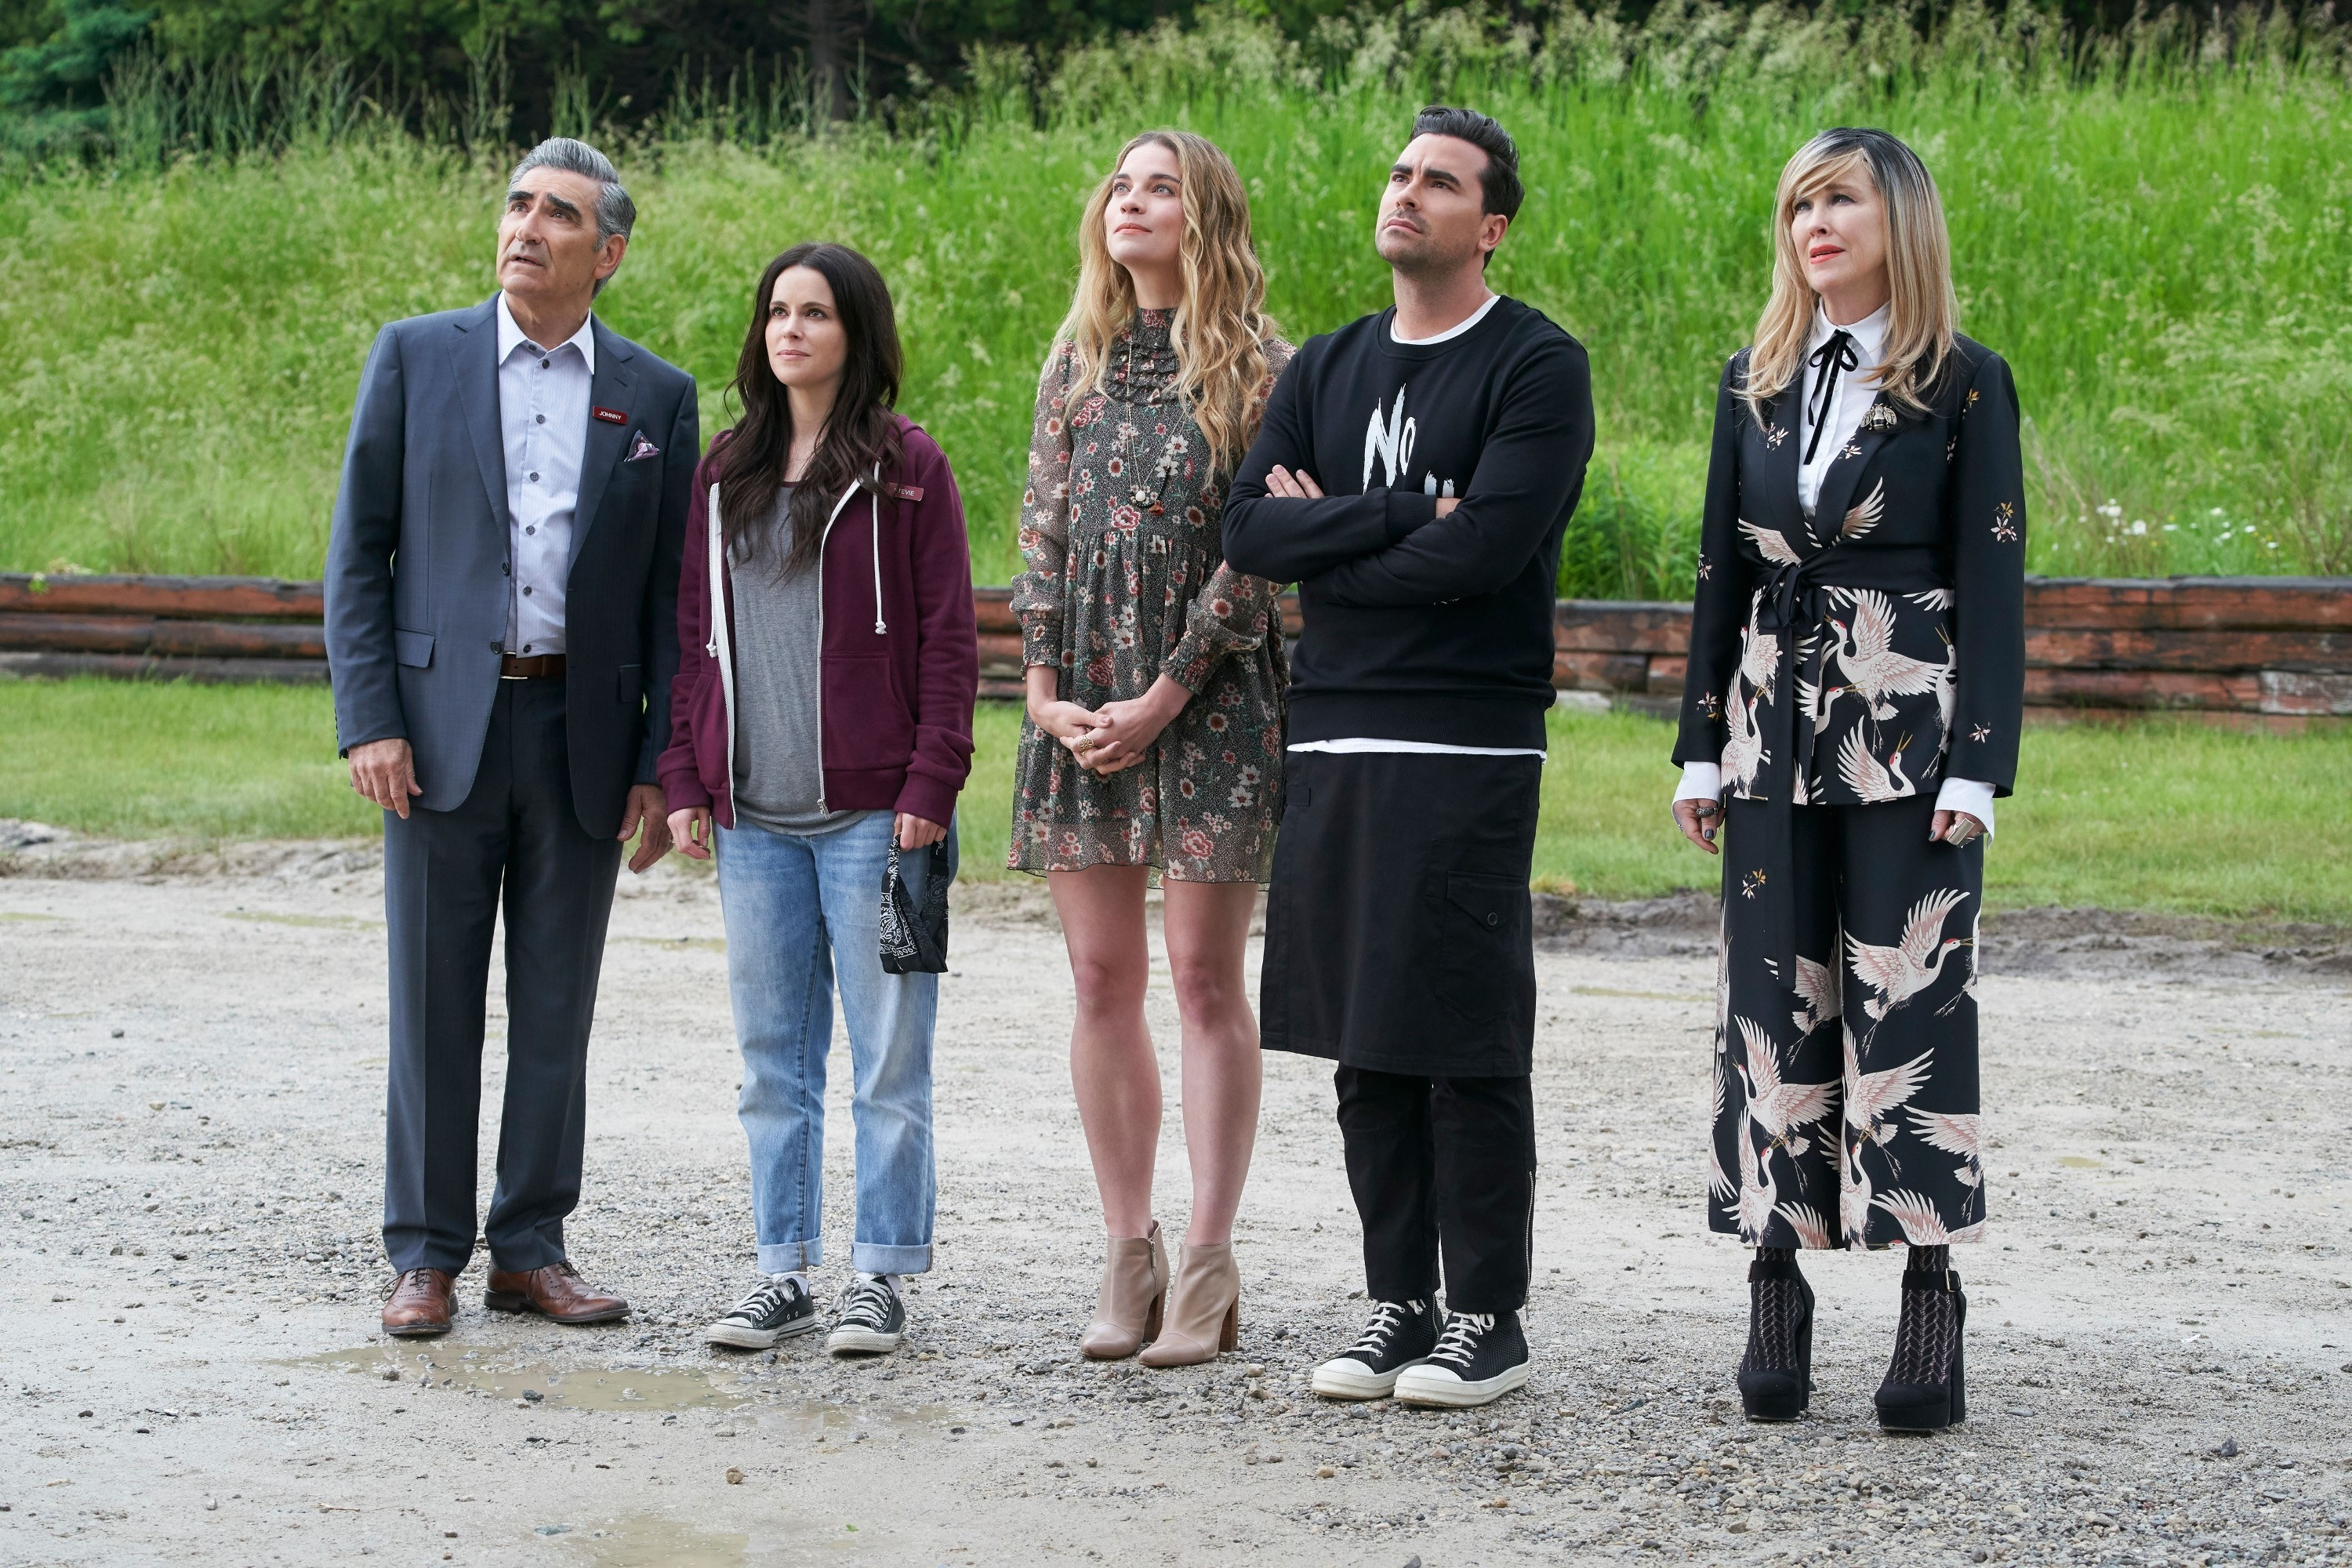 Cast of Schitt's Creek standing together and looking up